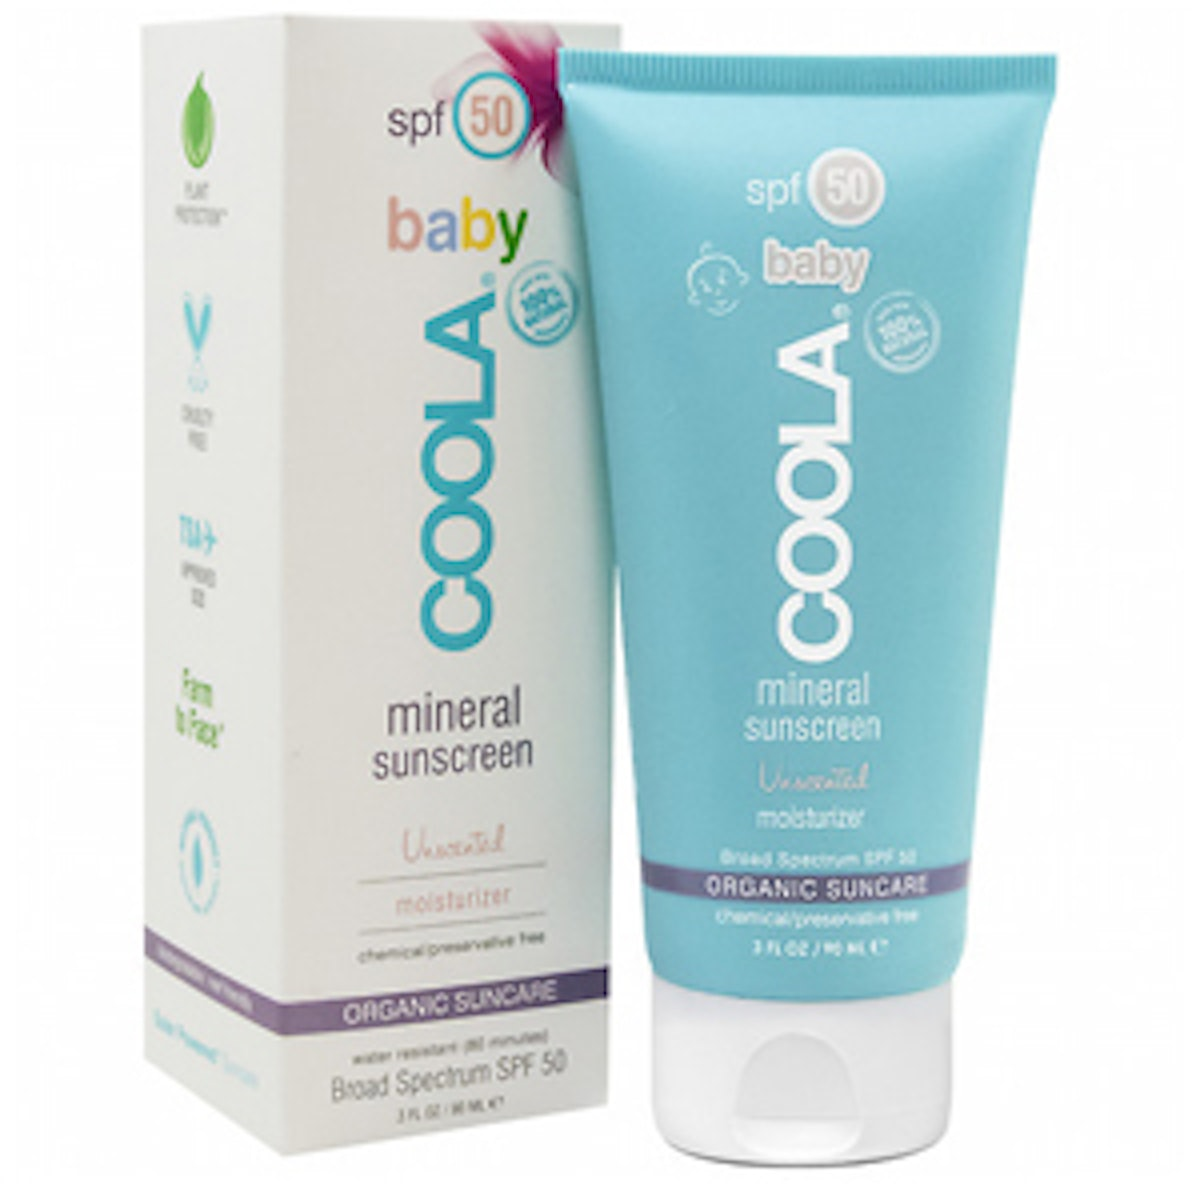 Baby Mineral Sunscreen SPF 50